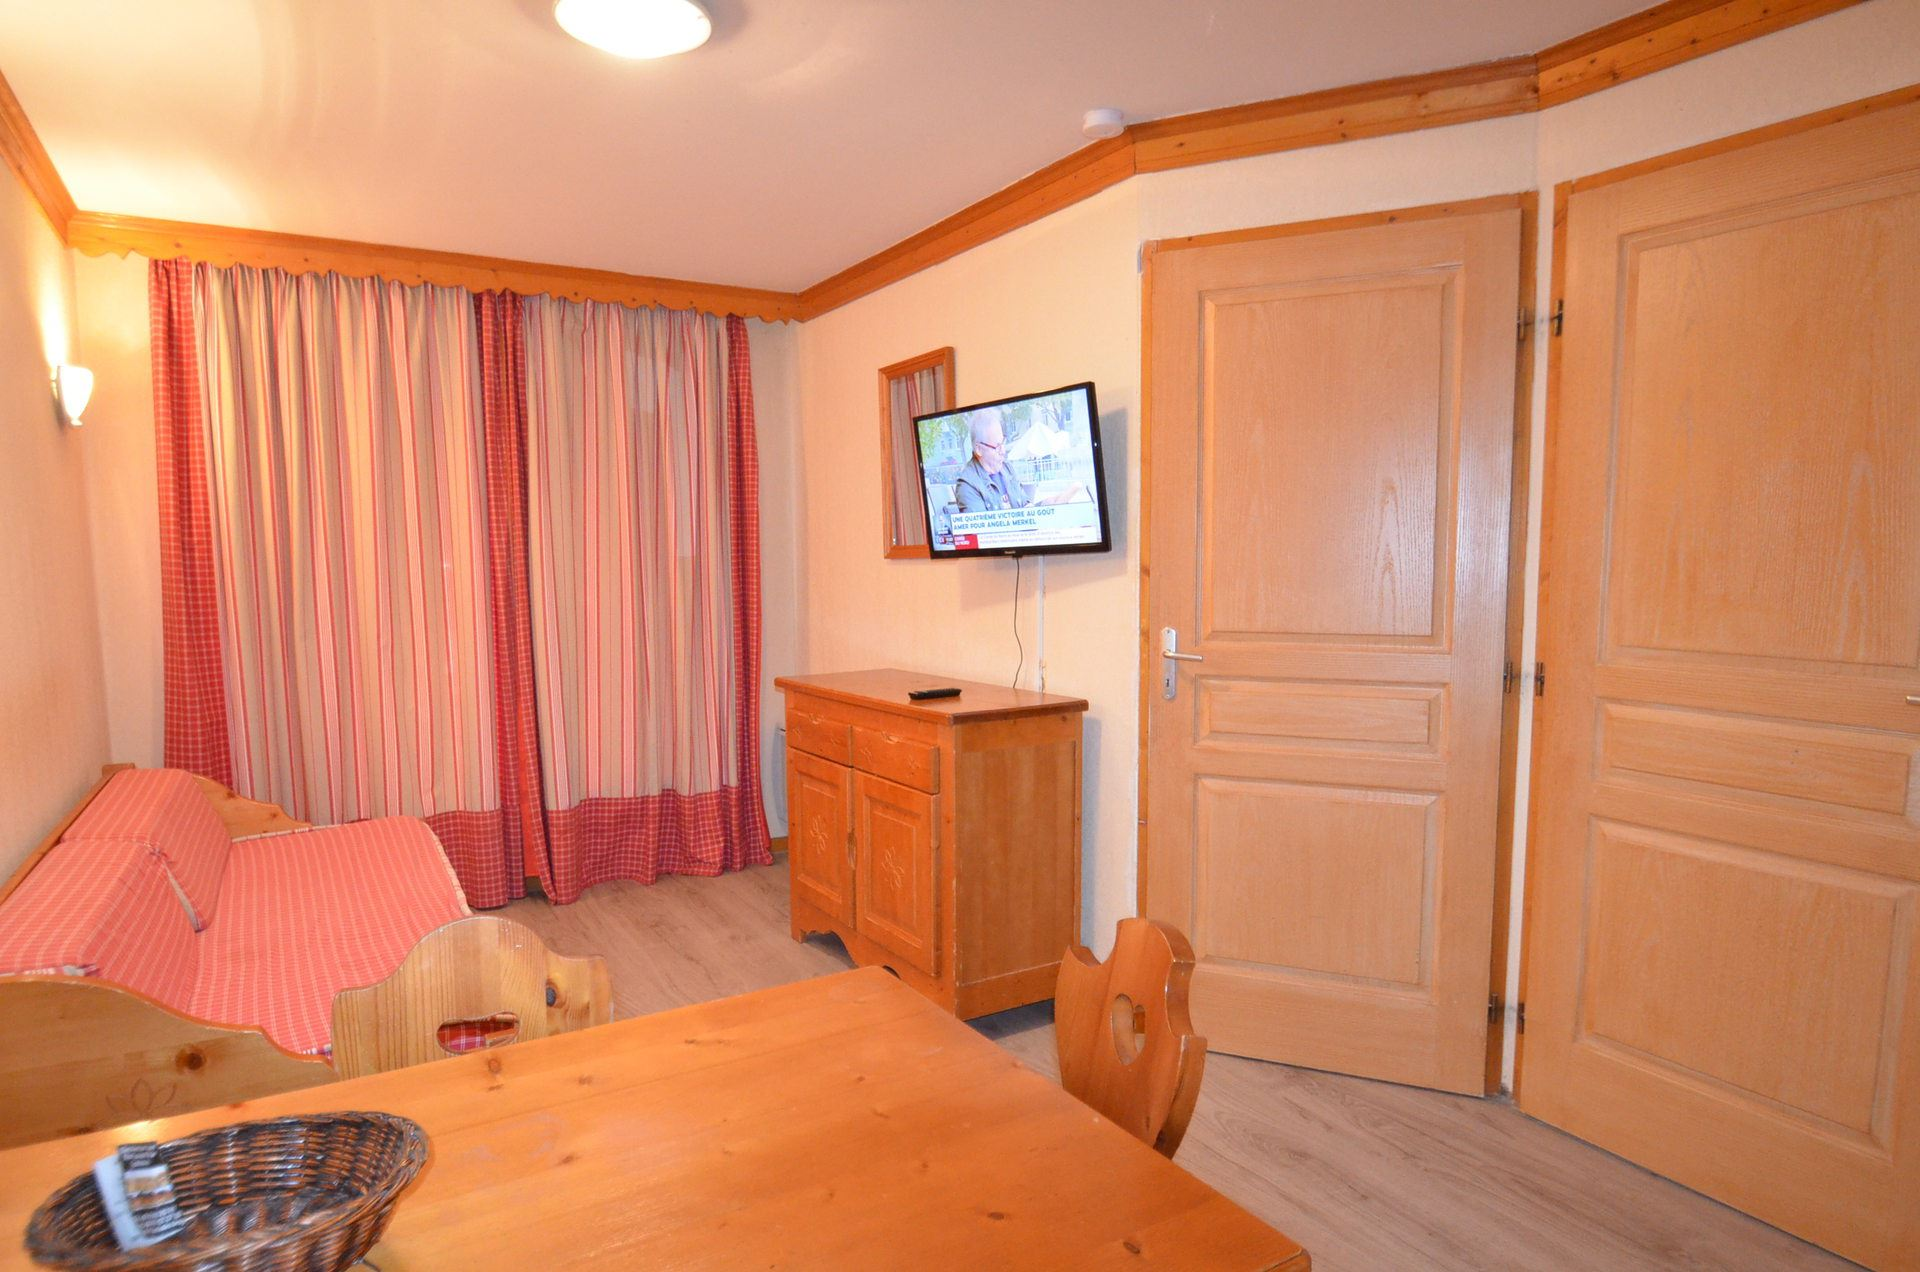 2 Room 4 Pers ski-in ski-out / Valmont 506